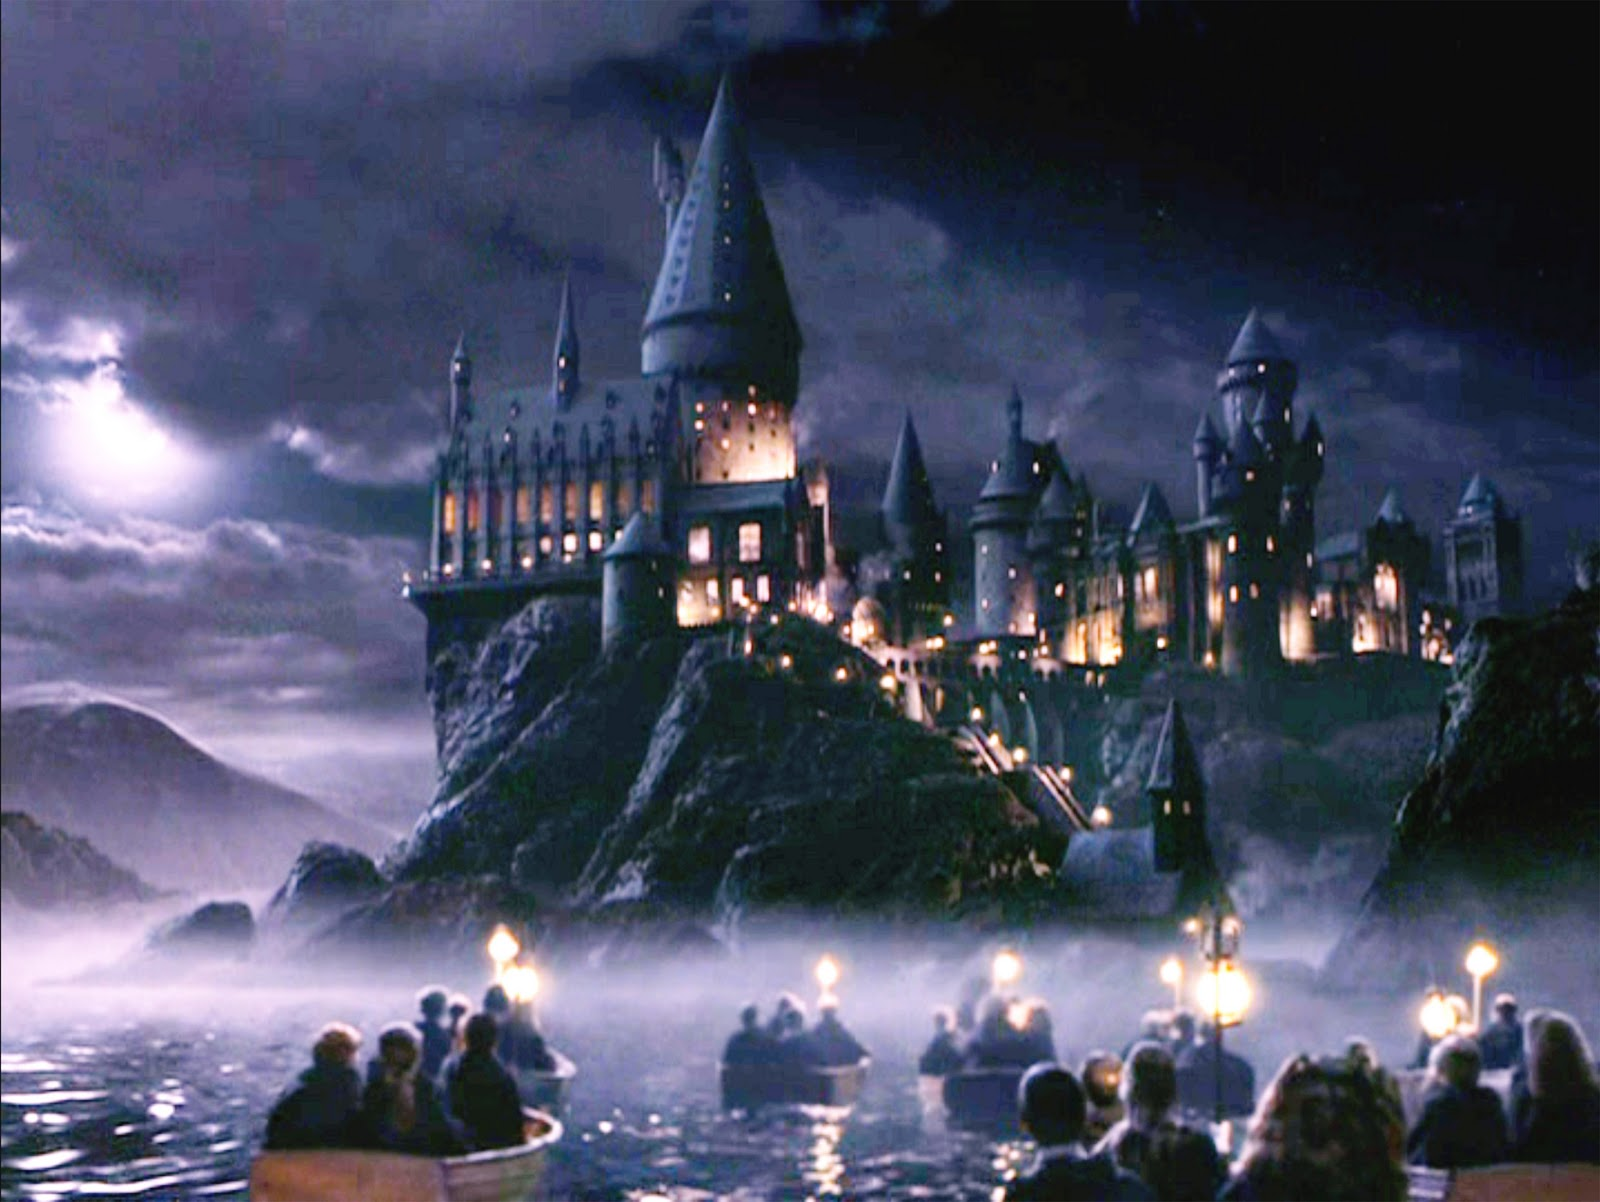 harry potter essays leaky cauldron Harry potter - jim dale patronus the philosopher's stone the chamber of secrets the prisoner of azkaban the goblet of fire (in development) the order of the phoenix (n/a) the halfblood prince (n/a) the deathly hallows (n/a.